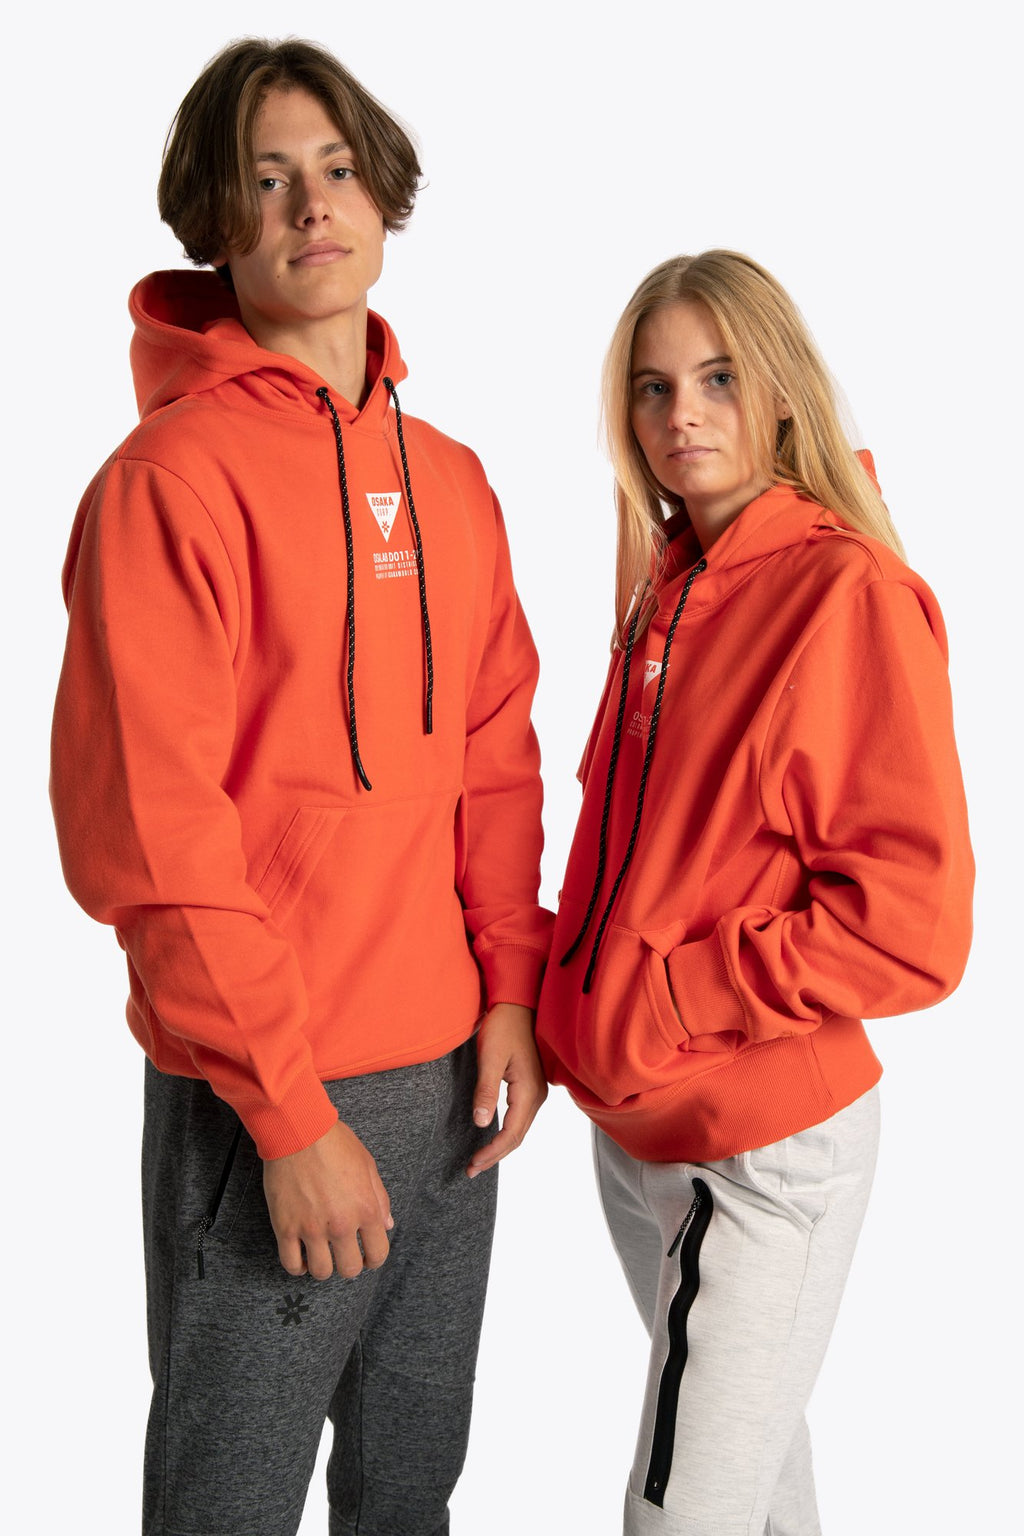 District 11 Hoodie - Orange